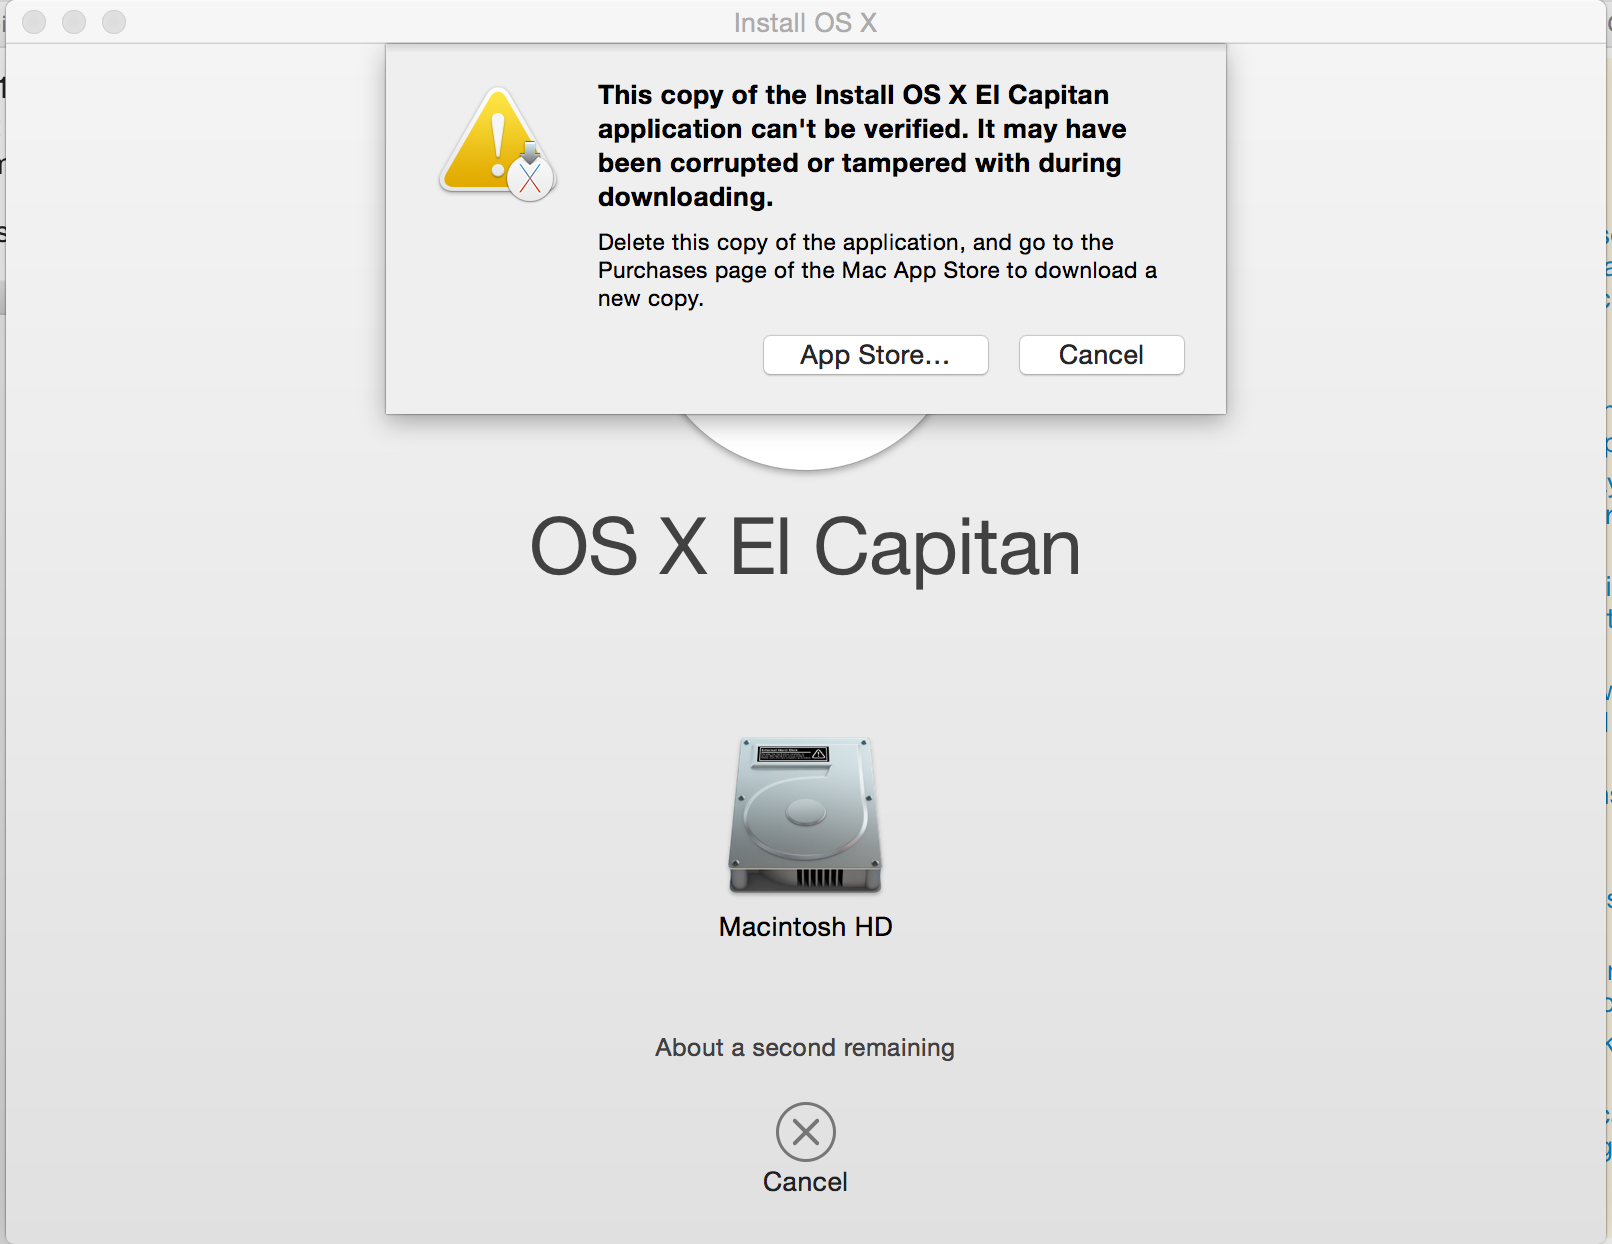 This copy of the Install OS X El Capitan application can't